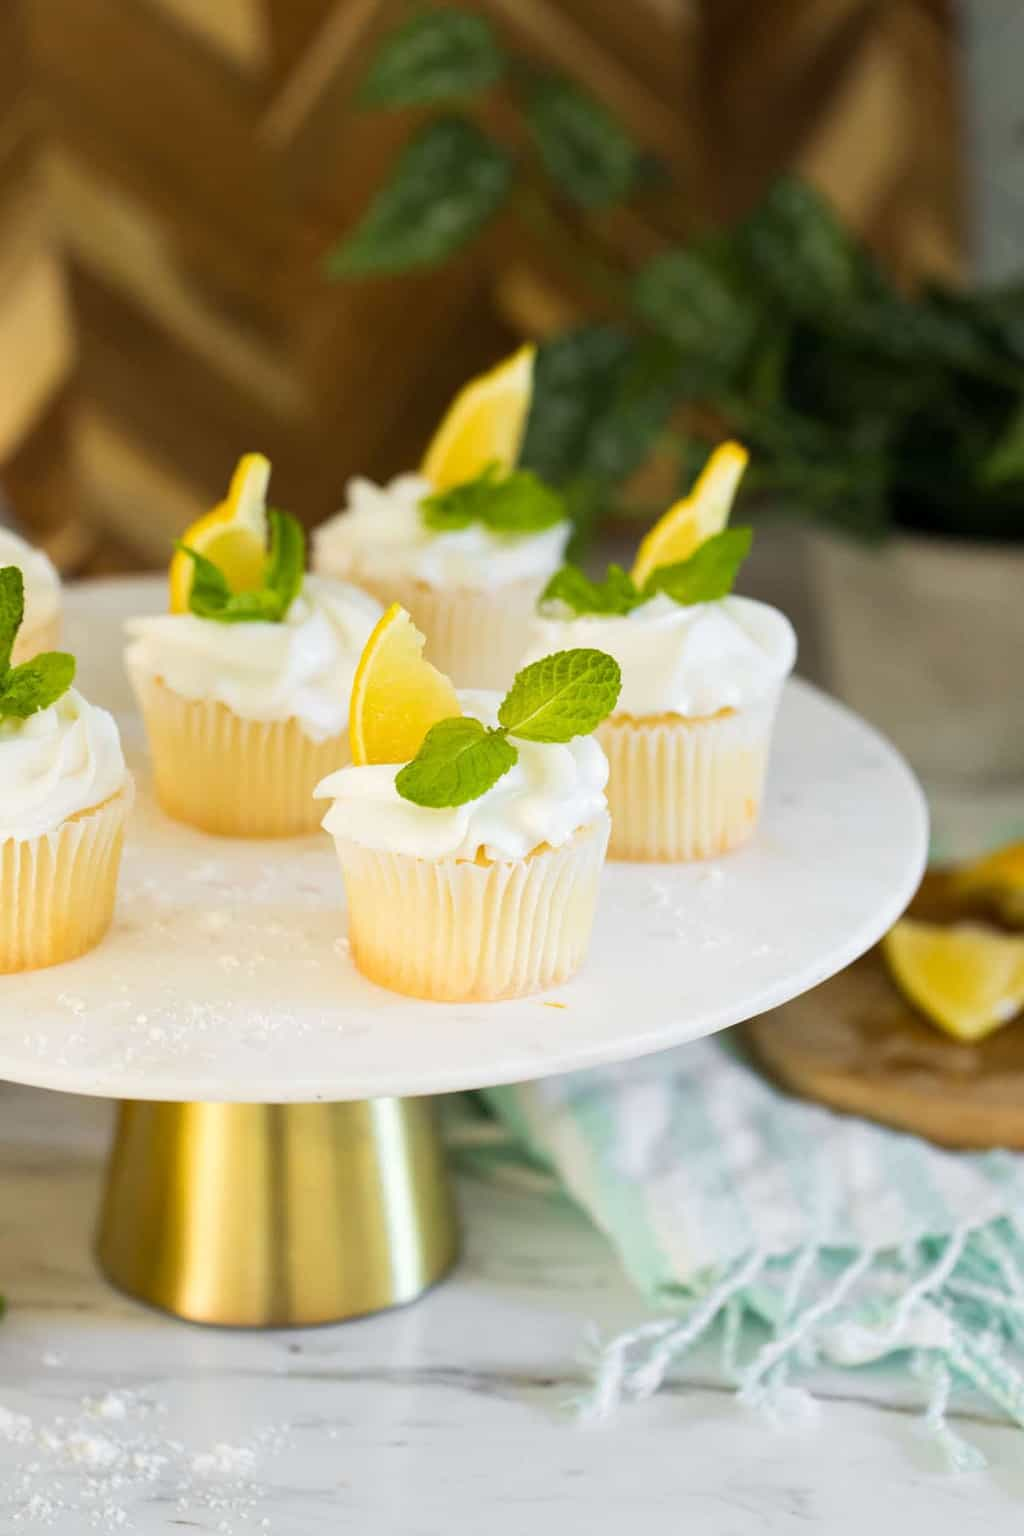 photo of the lemon cupcakes on a cake stand by top Houston lifestyle blogger Ashley Rose of Sugar & Cloth